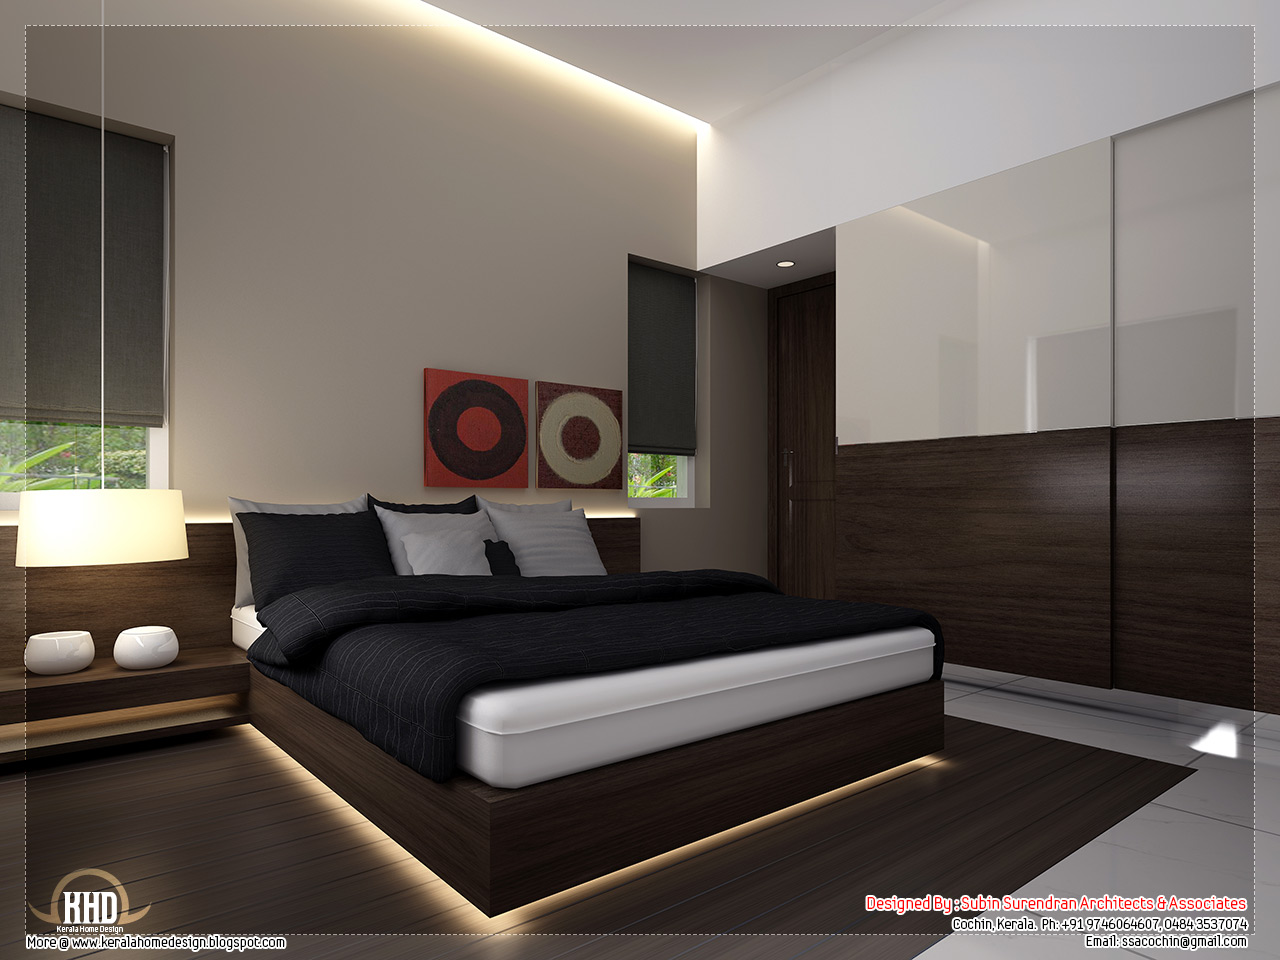 Beautiful home interior designs kerala house design idea for Beautiful bedroom interior